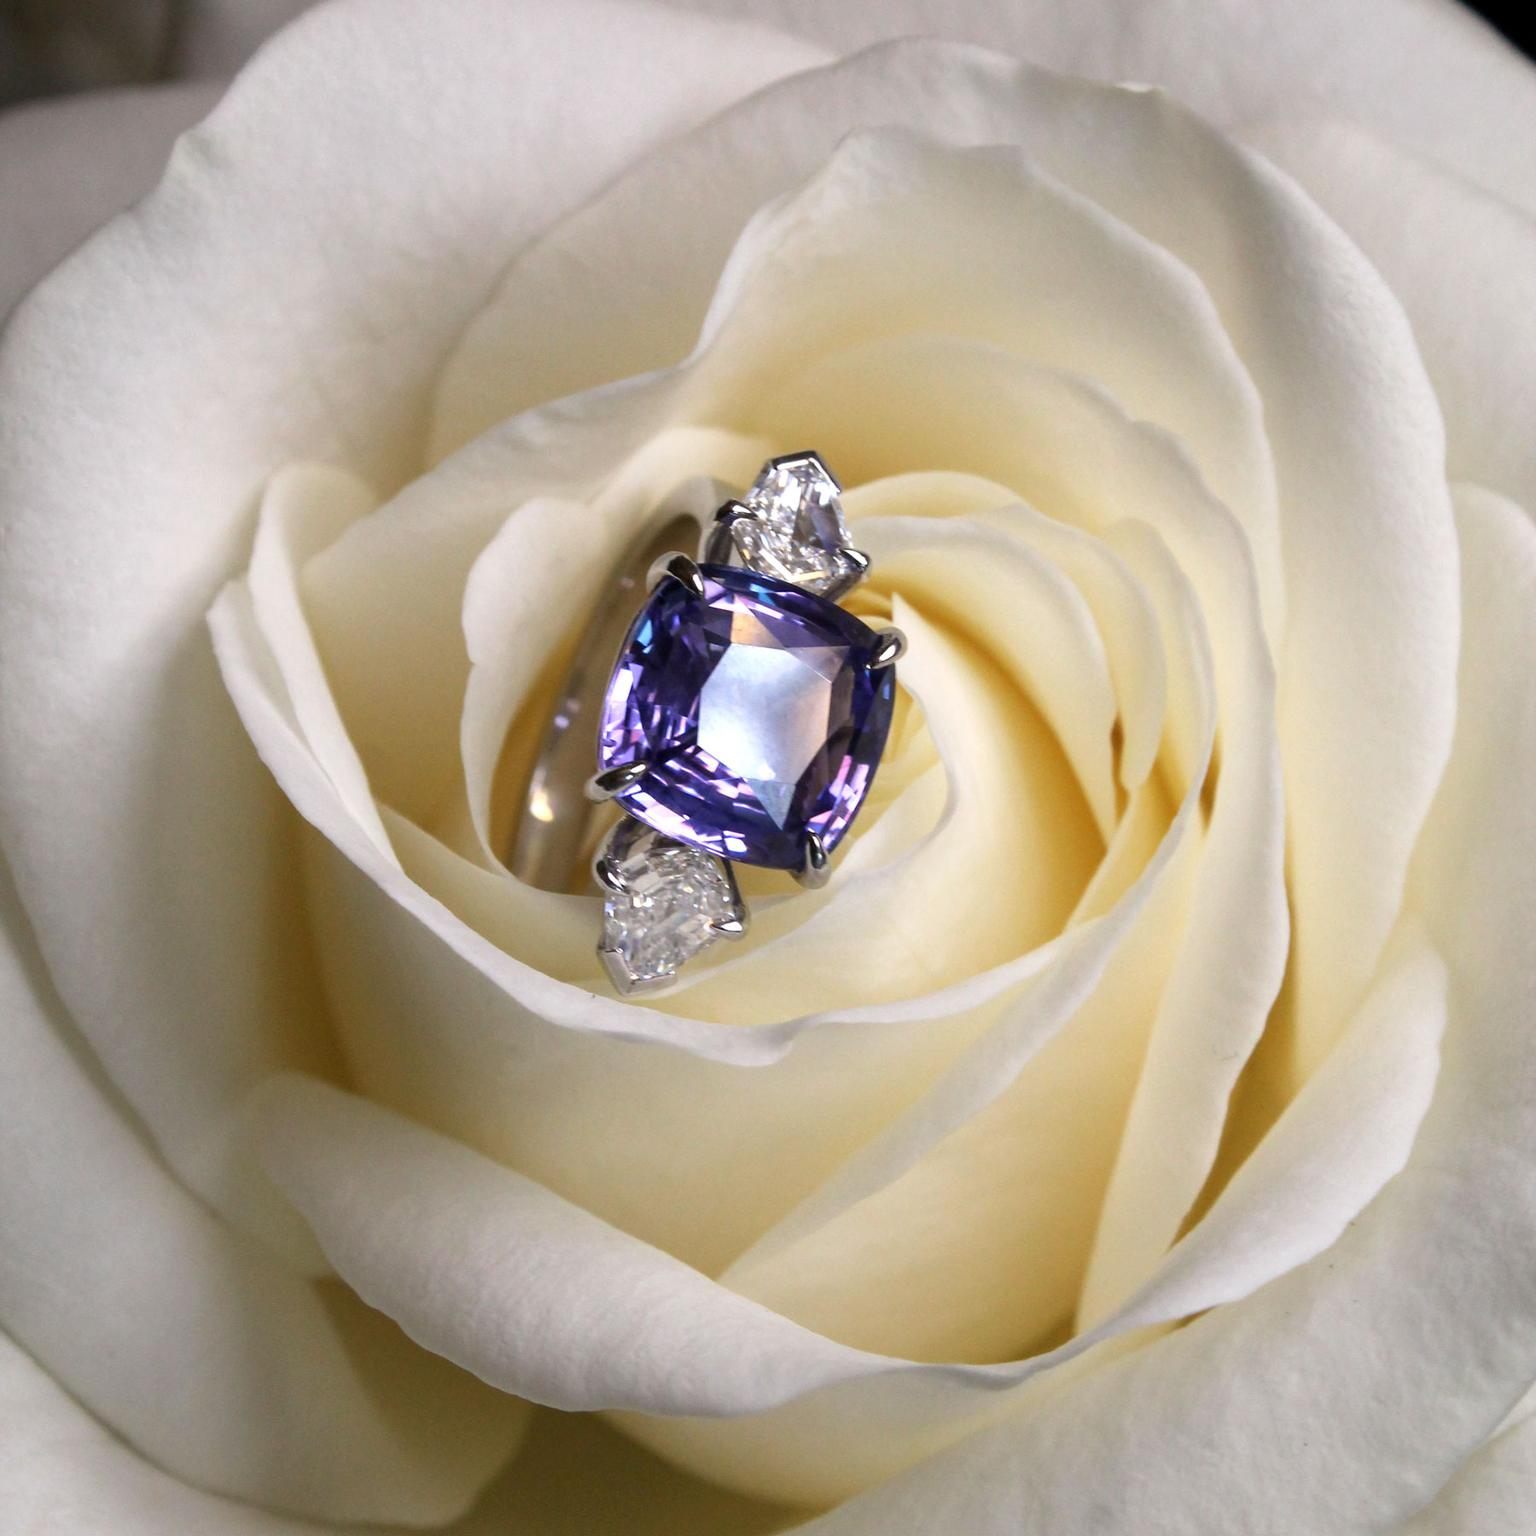 Hirsh Trio lavender sapphire and diamond engagement ring in rose